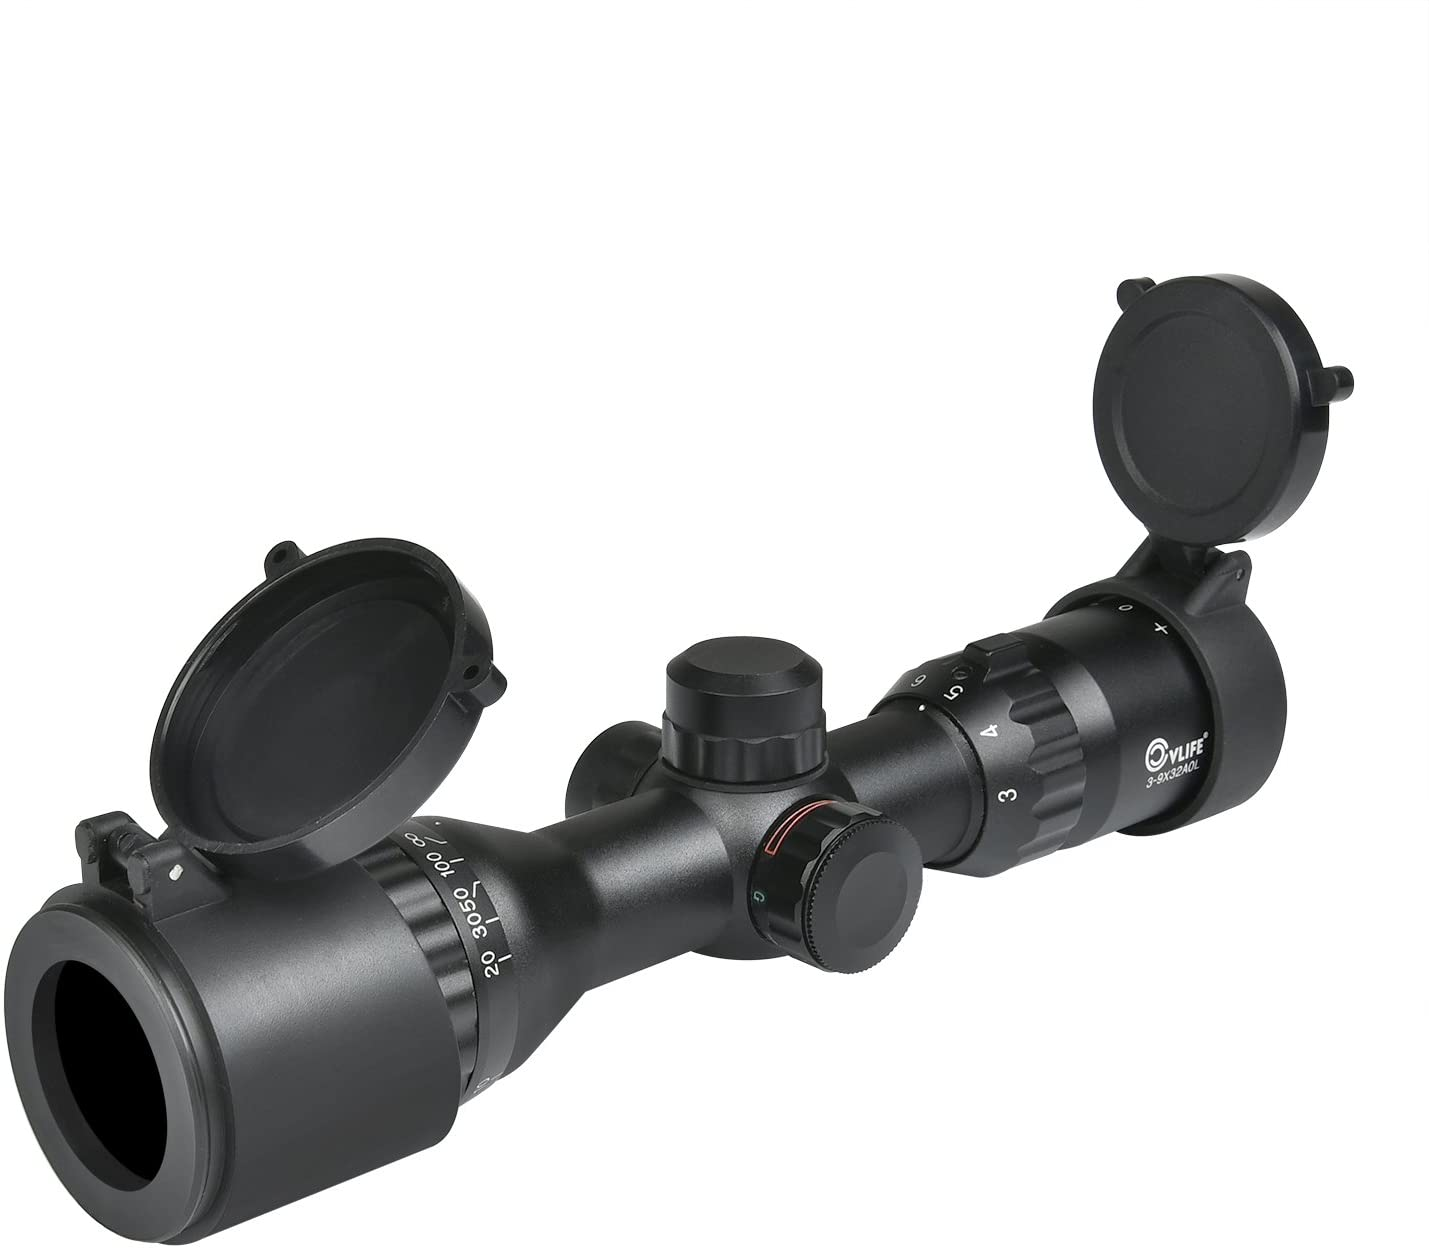 Amazon.com : CVLIFE Hunting Rifle Scope 3-9x32 AOL Red and Green Illuminated Tactical Gun Scope with 20 mm Mounts (Green Lens) : Sports & Outdoors